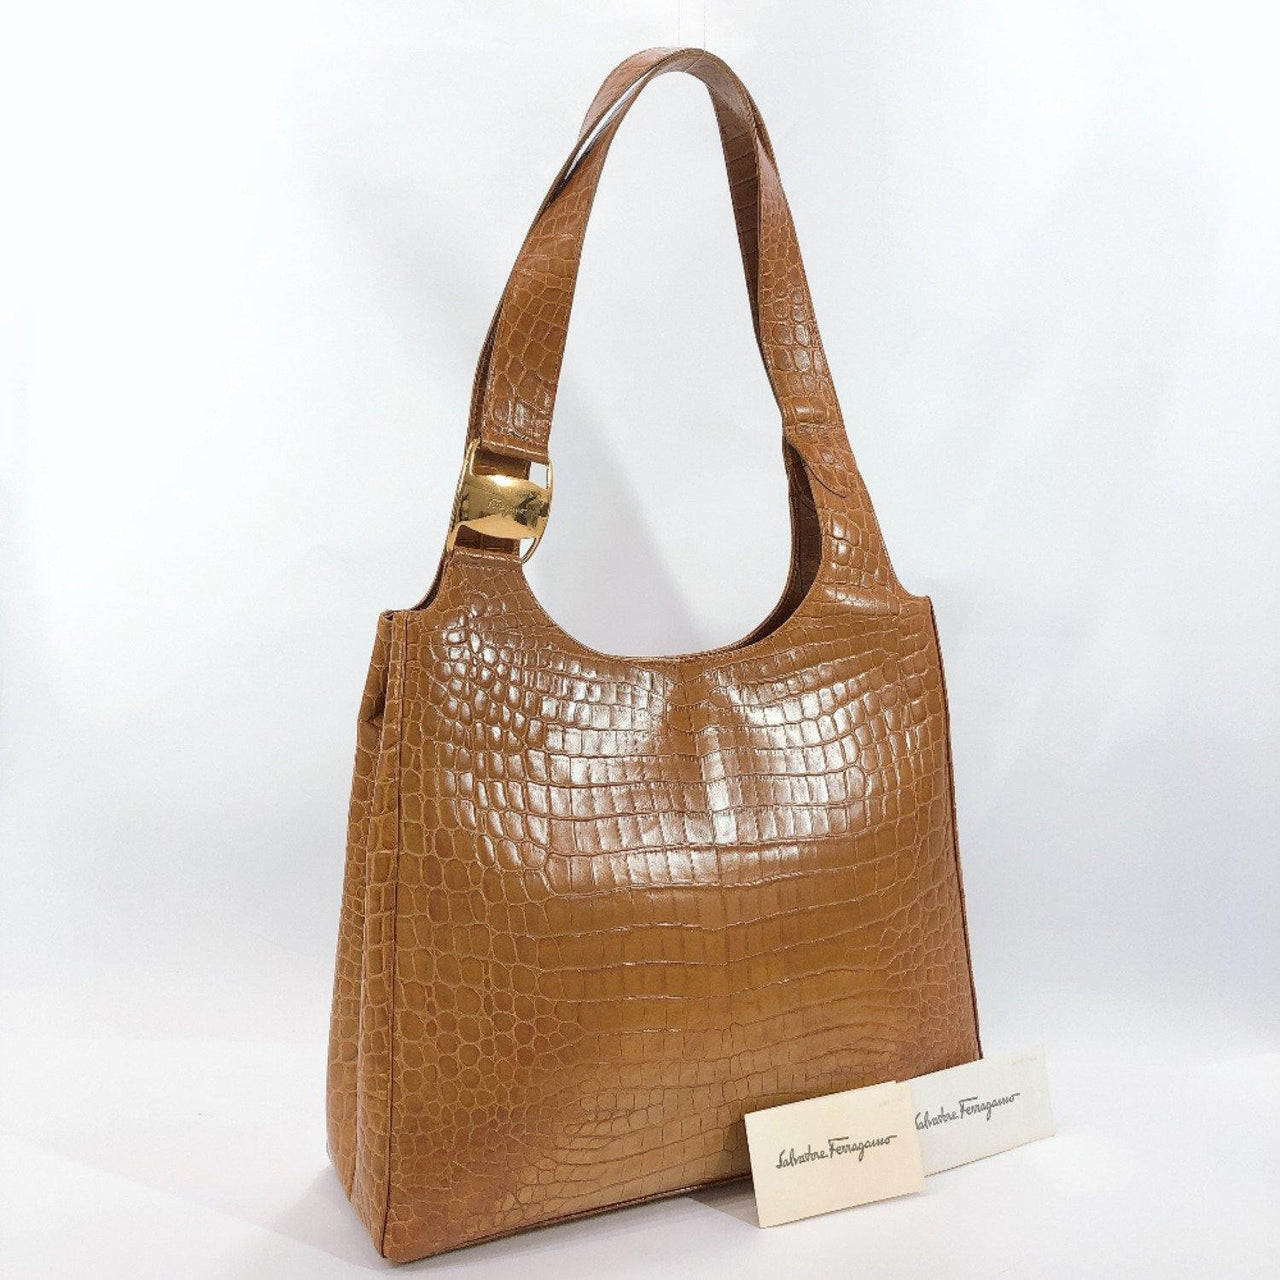 Salvatore Ferragamo Tote Bag BA-21 leather Brown Women Used - JP-BRANDS.com